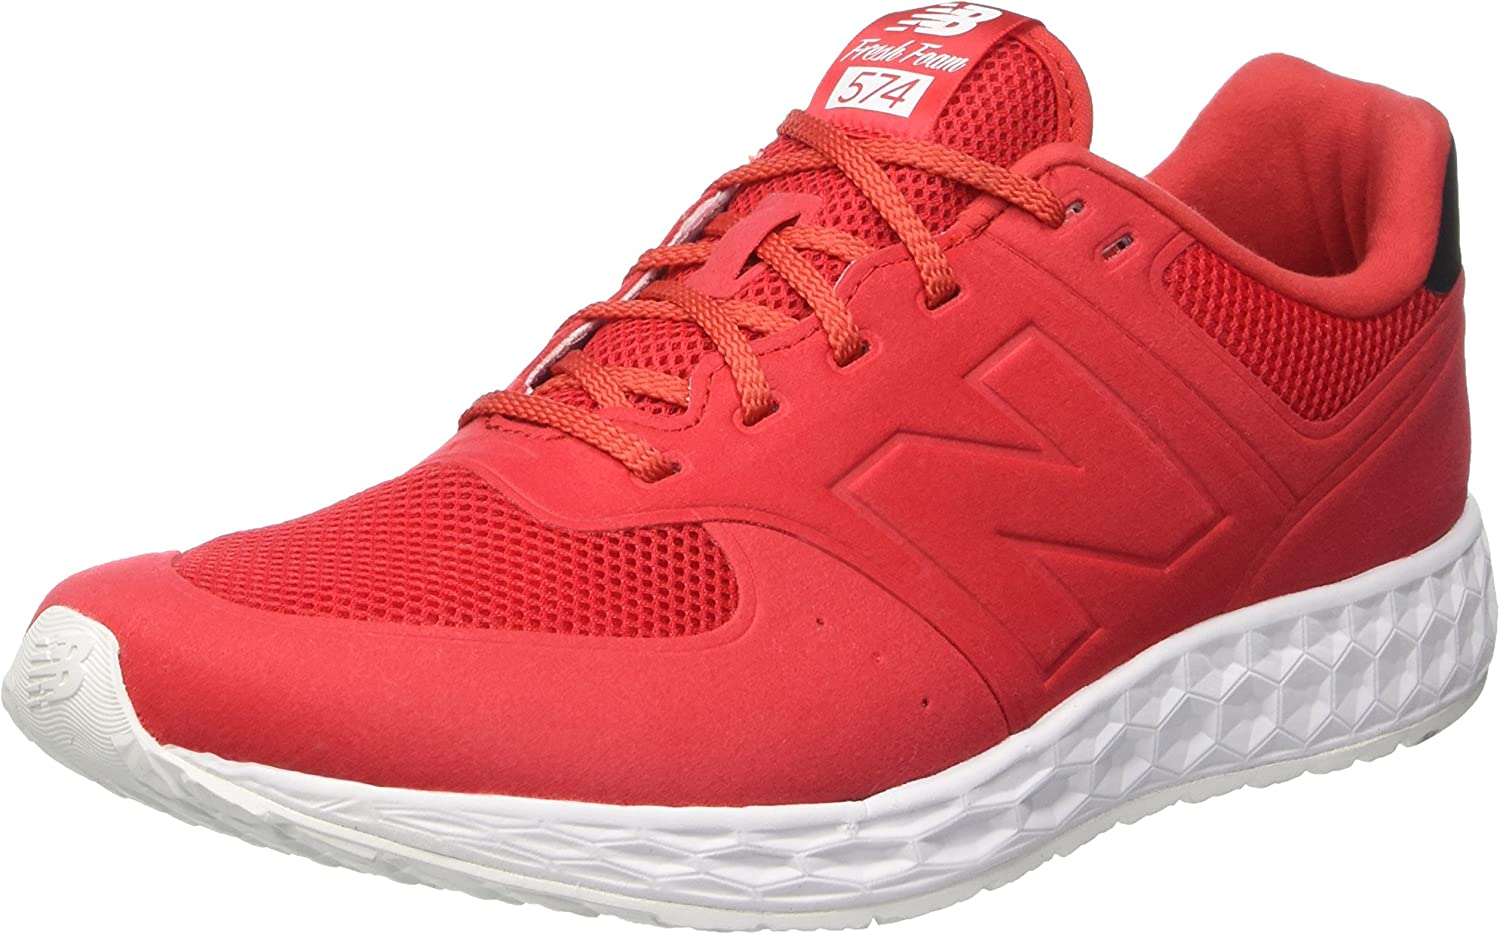 New Balance Mfl574, Men's Sneakers